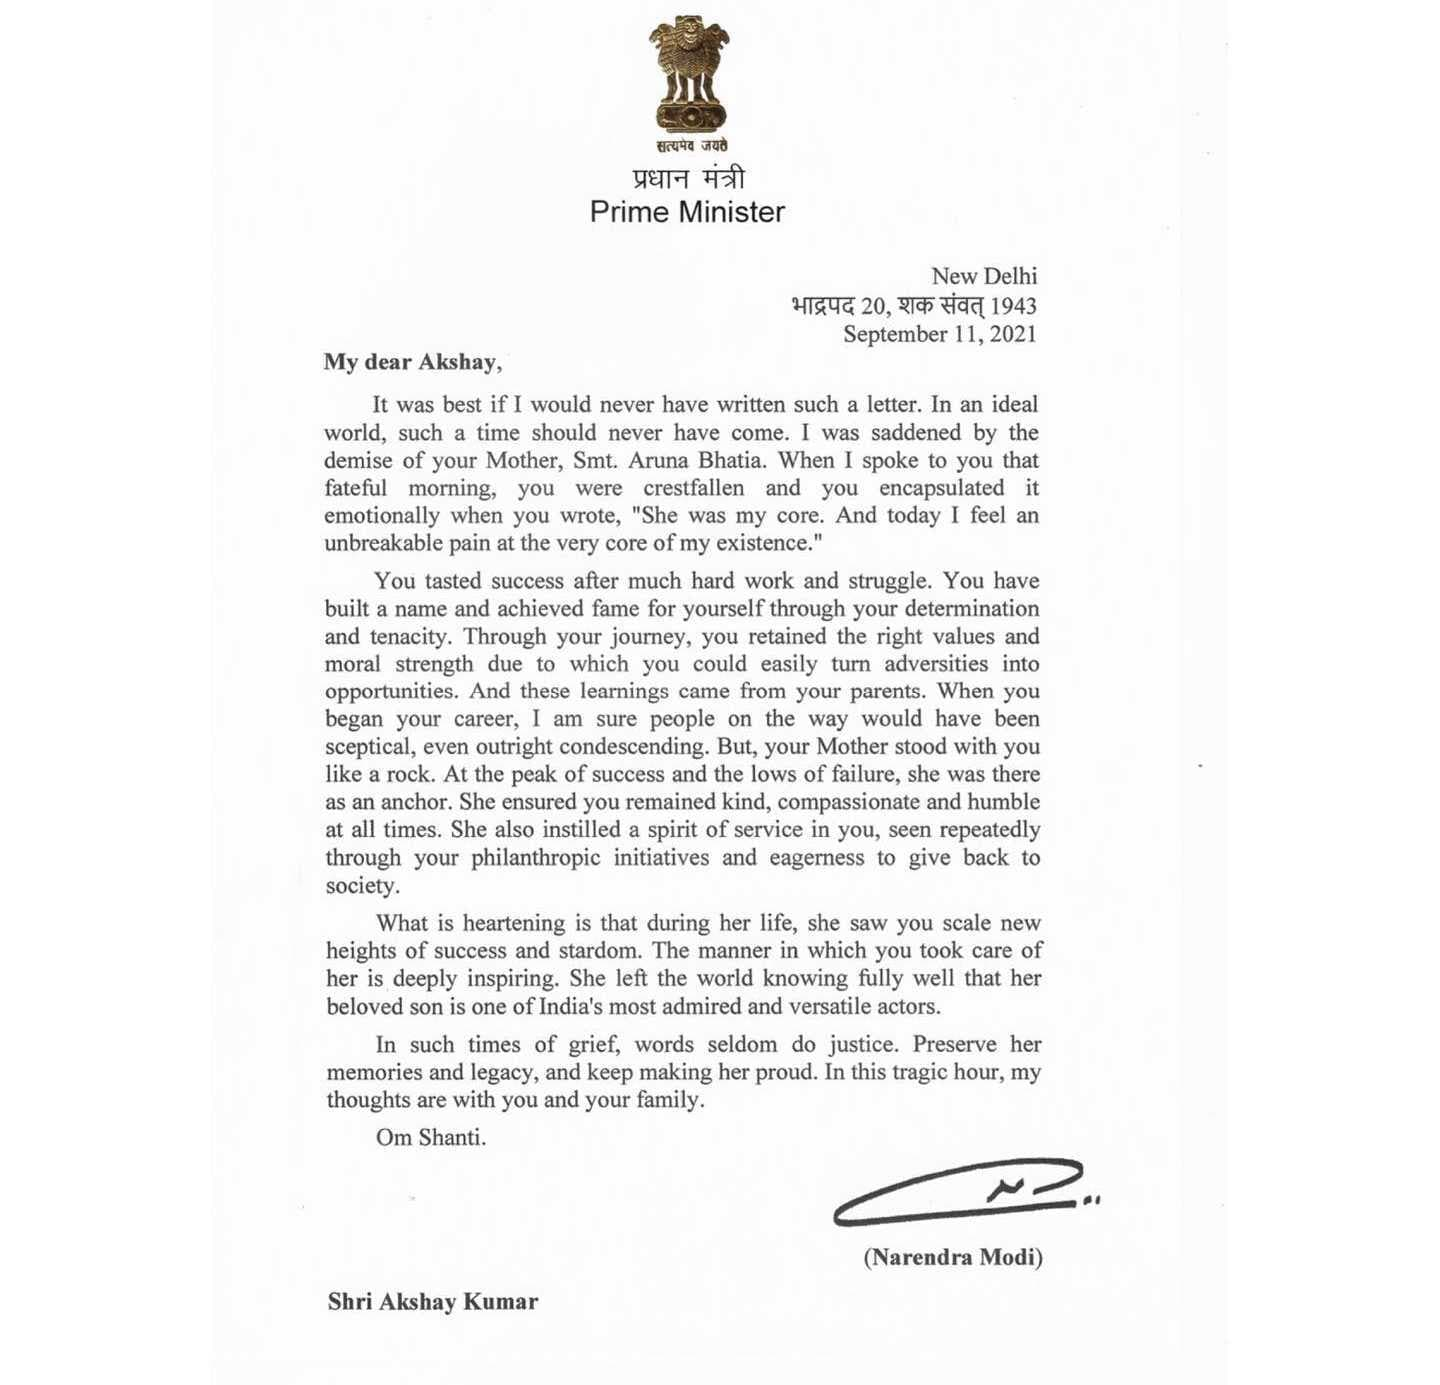 Akshay Kumar responds to Prime Minister Modis' letter: what to do when the heat of certain words leaves you speechless